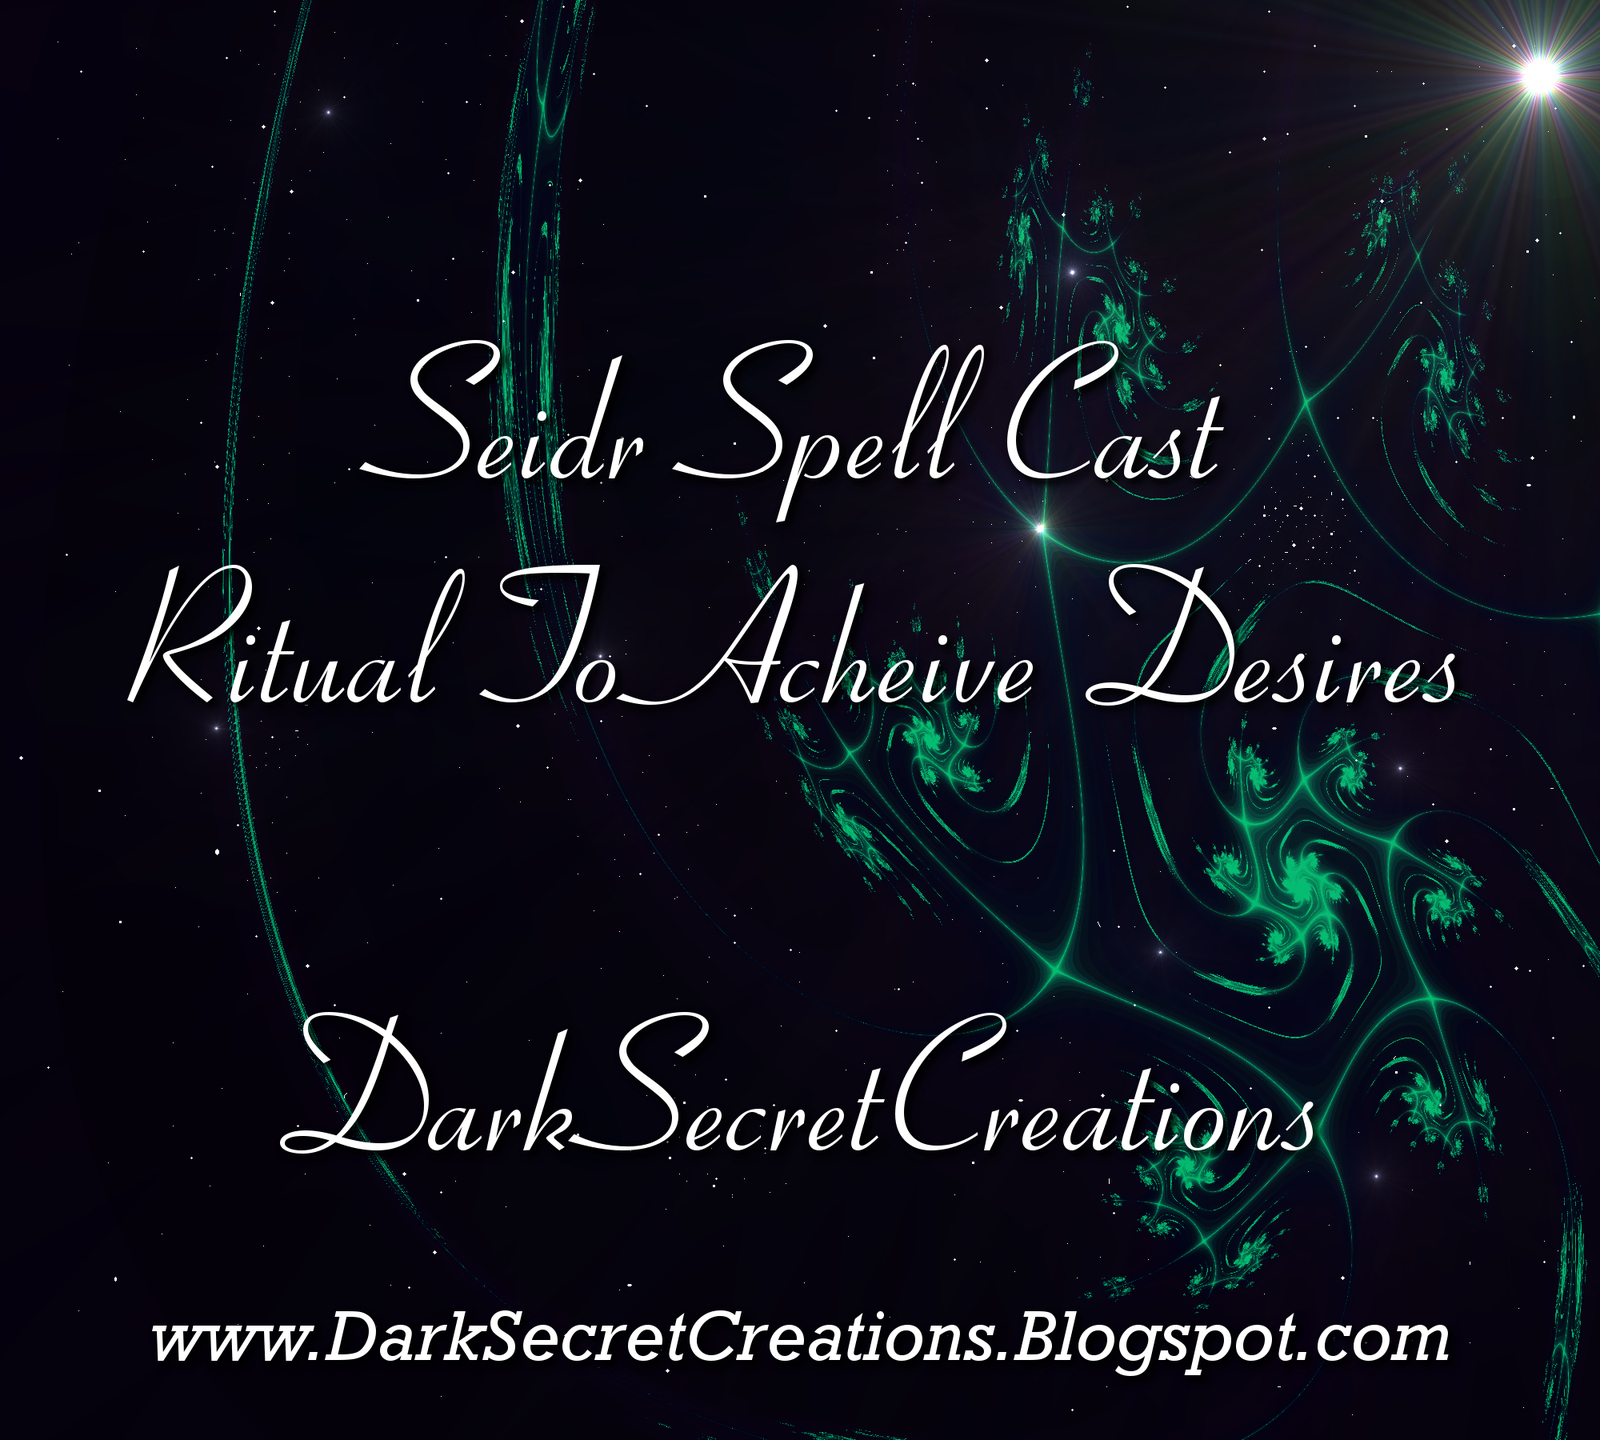 Seidr Spell Cast Ritual To Acheive Desires, Coven Cast Spell